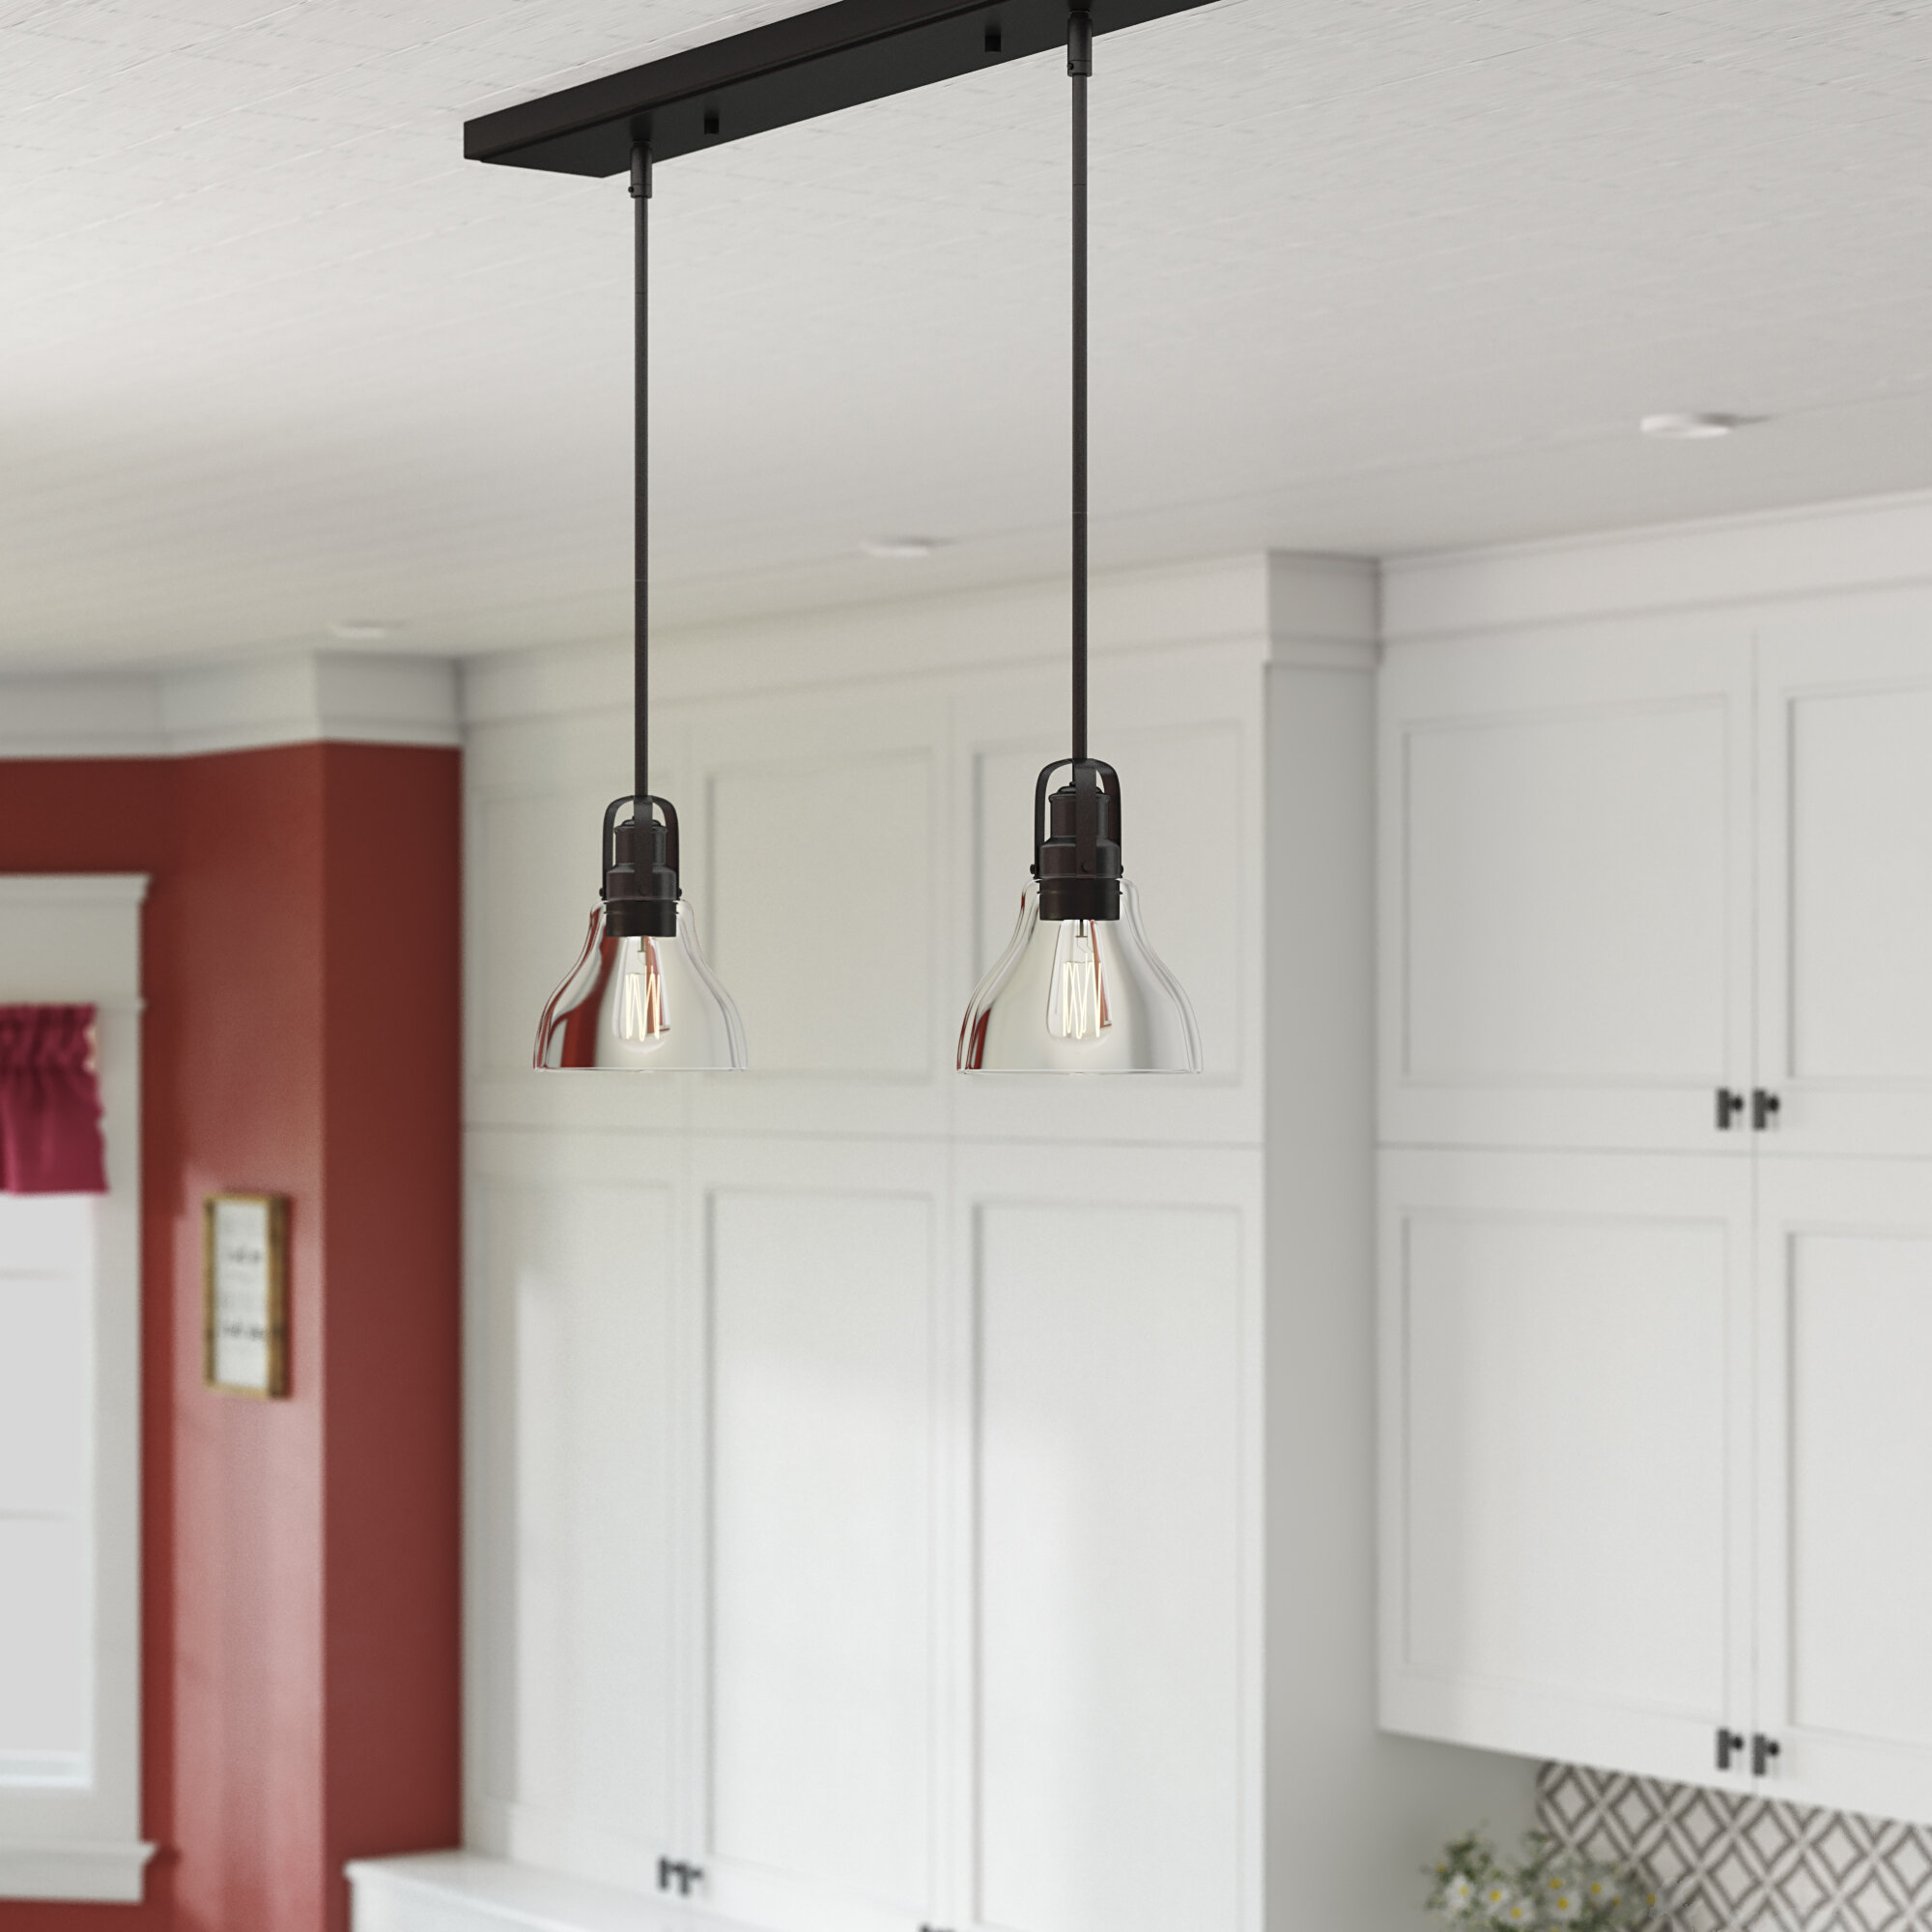 Laurel Foundry Modern Farmhouse Lindley 2 Light Kitchen Island Linear Pendant Reviews Wayfair Ca